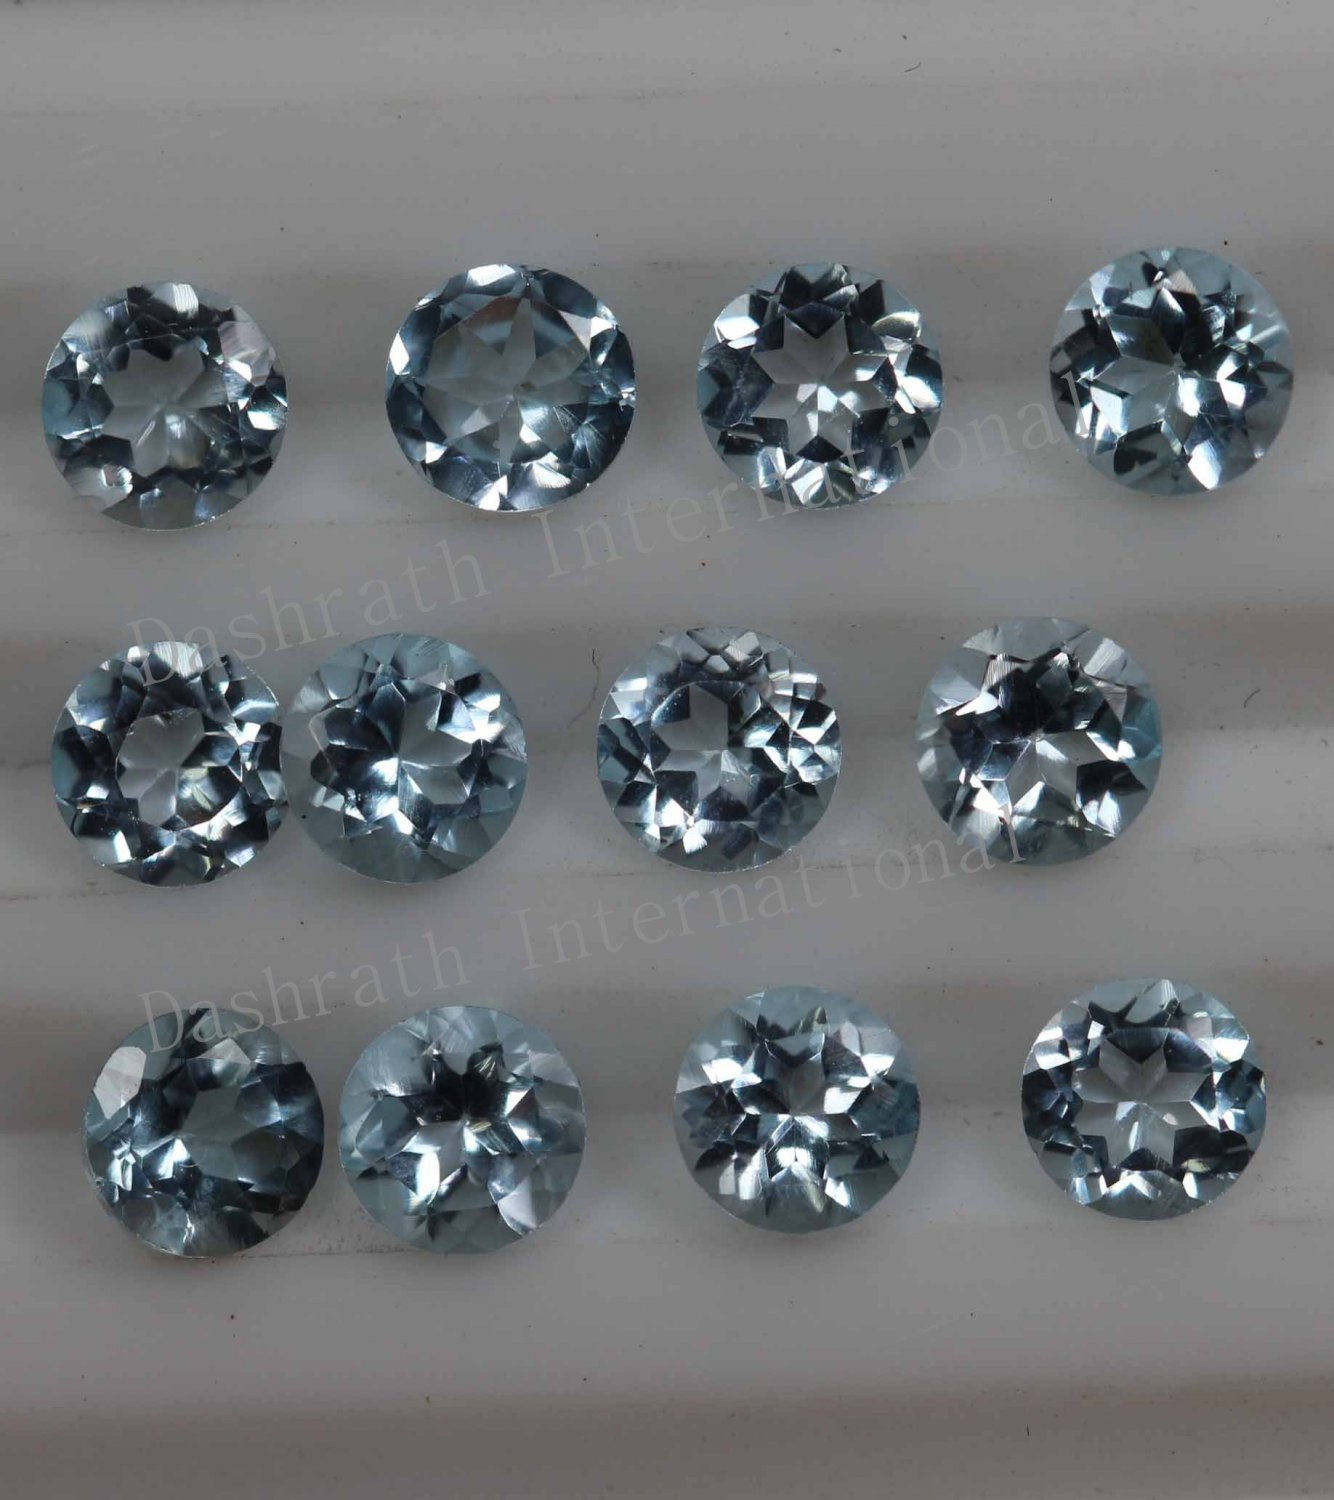 4mmNatural Sky Blue Topaz Faceted Cut Round 50 Pieces Lot Blue Color  Top Quality Loose Gemstone